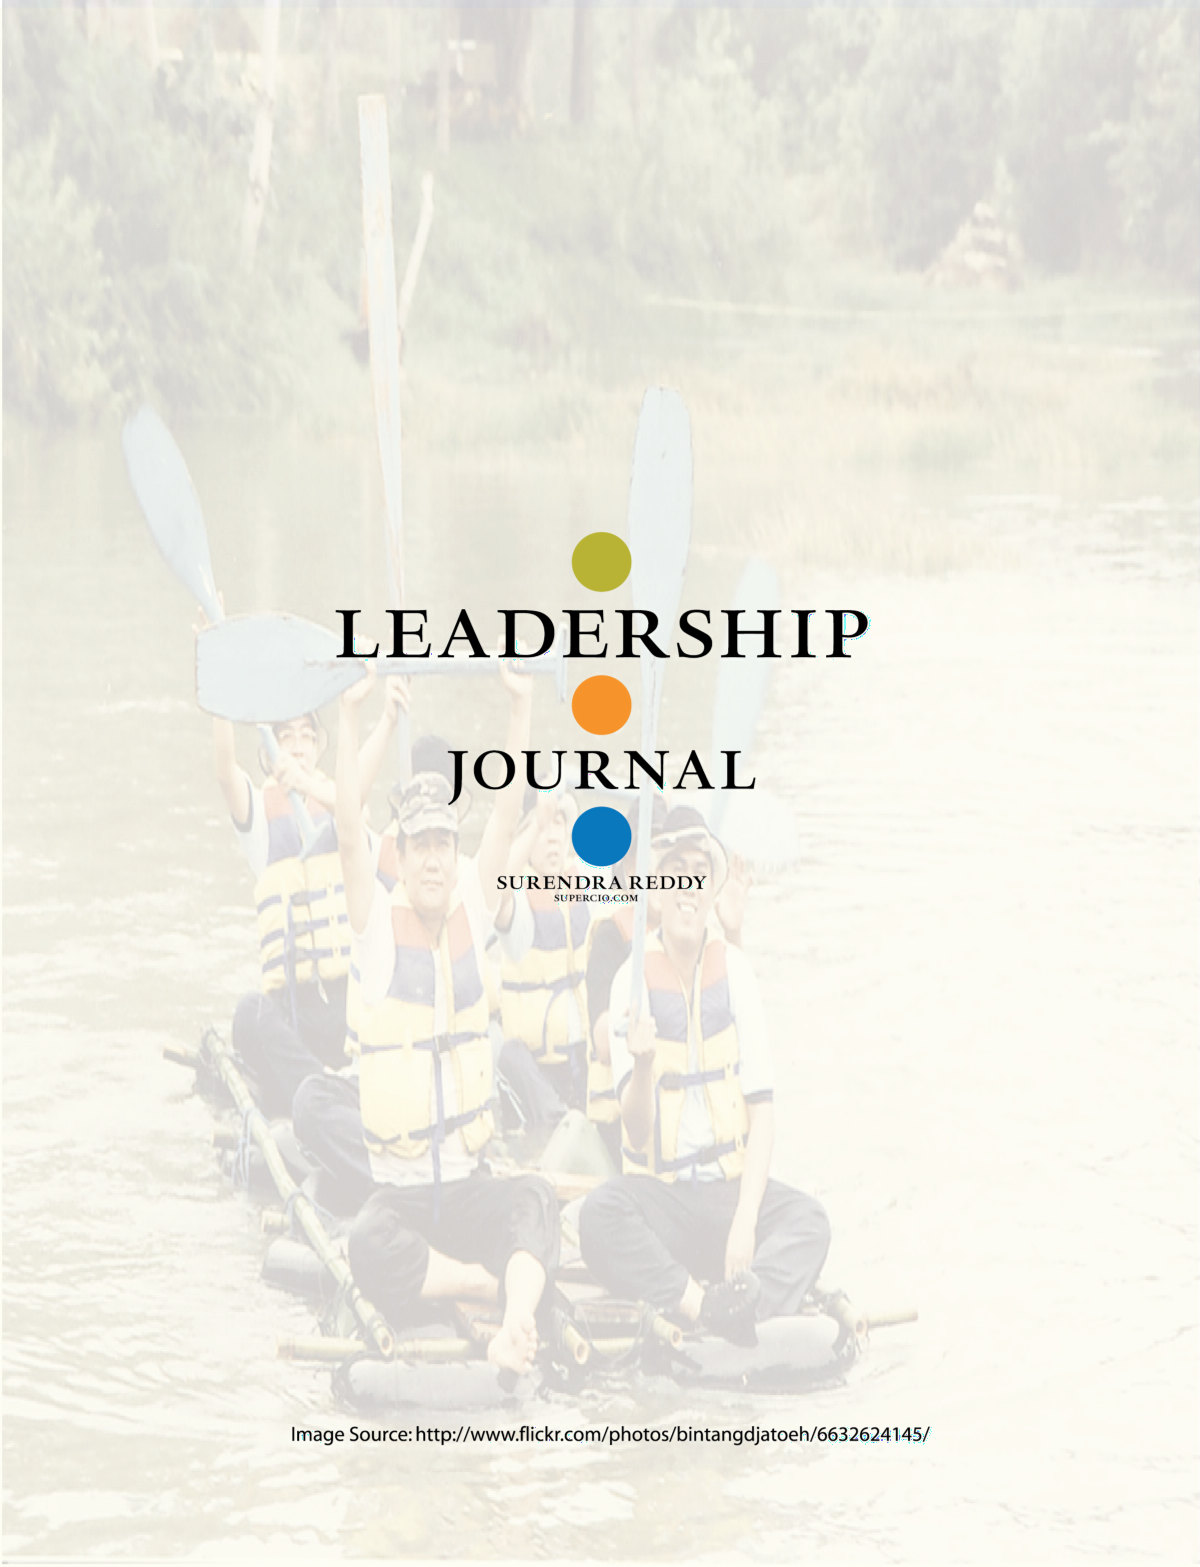 leadership journals The journal of cases in educational leadership (jcel) publishes, in electronic format, peer-reviewed cases appropriate for use in educational leadership preparation efforts across the globethe cases provide a narrative and teaching notes with the aim being to prompt rich discussion and inquiry about issues pertinent to educational leadership across global contexts.